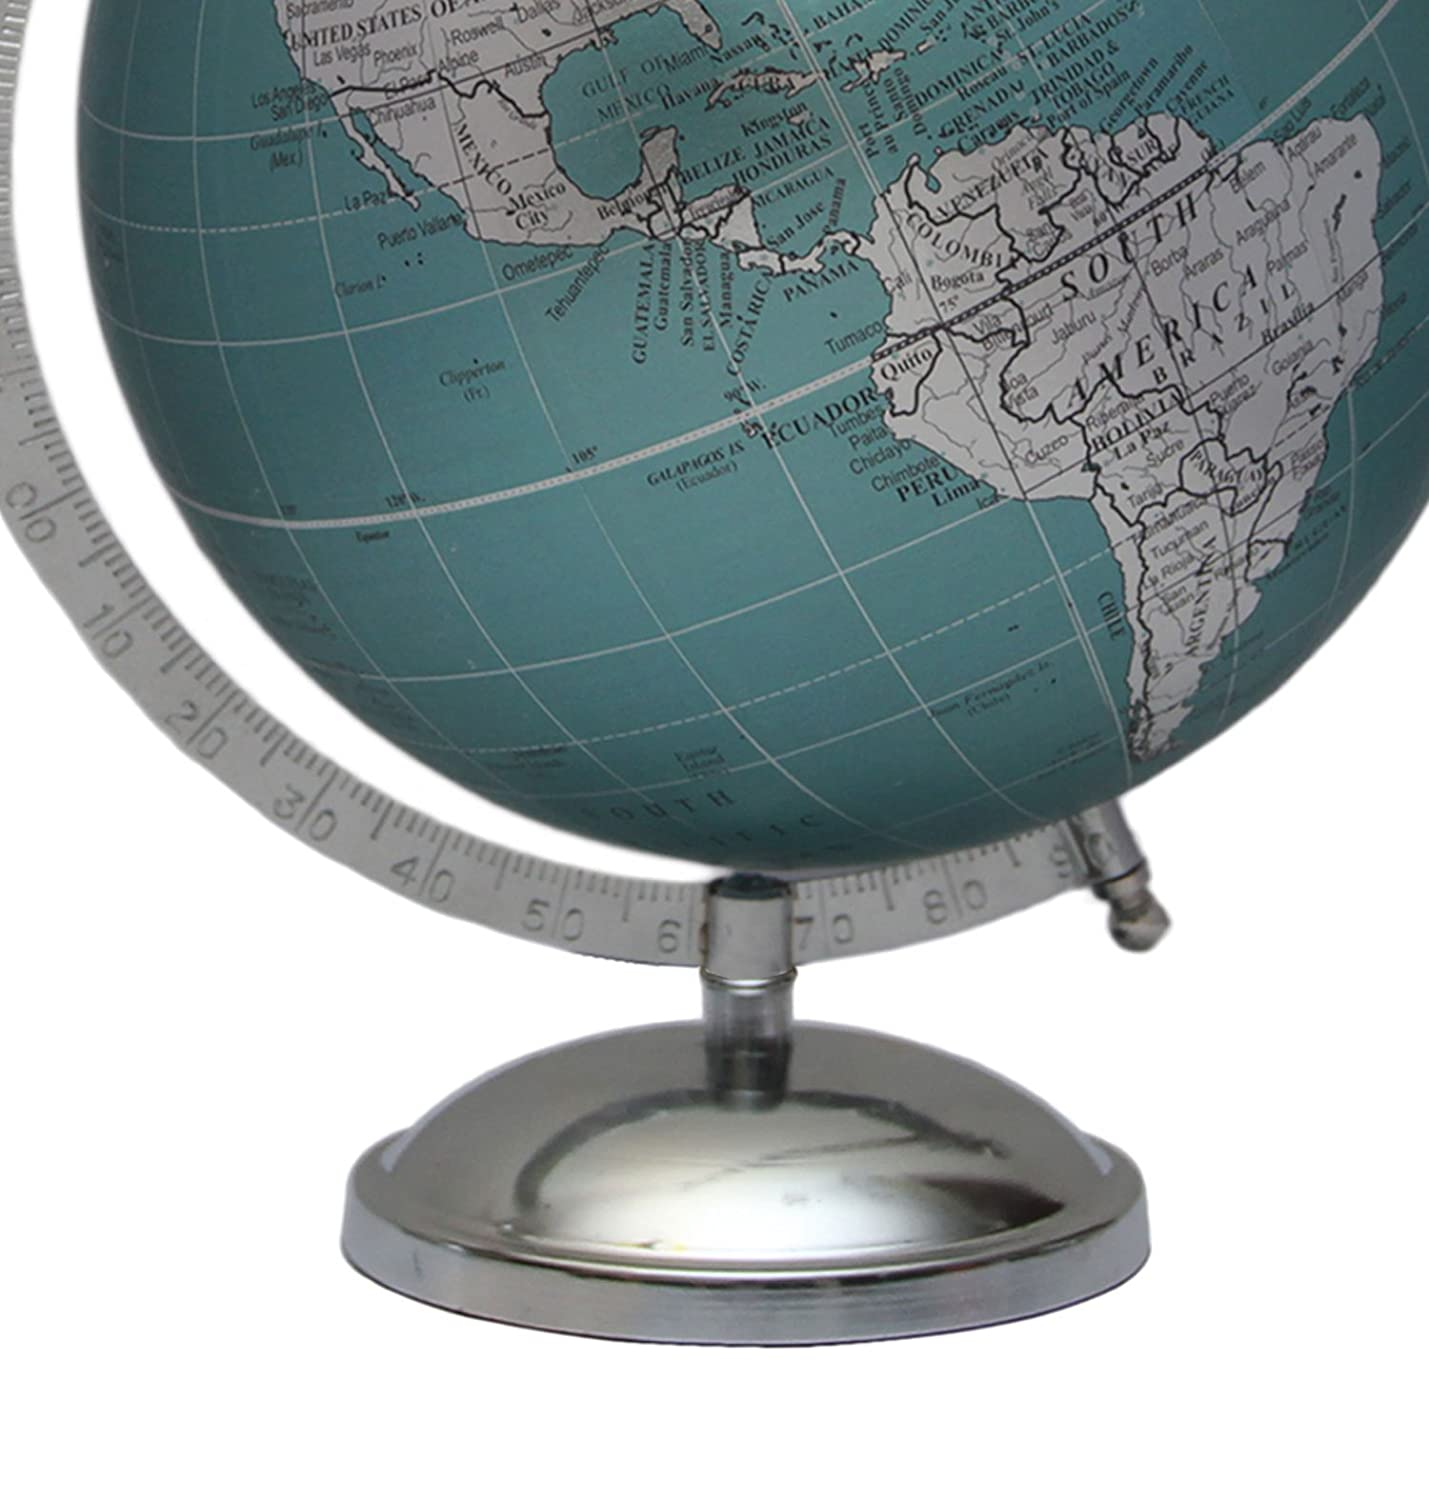 Amazon.com: masterpieceindia Geographical educativo 8 inches ...